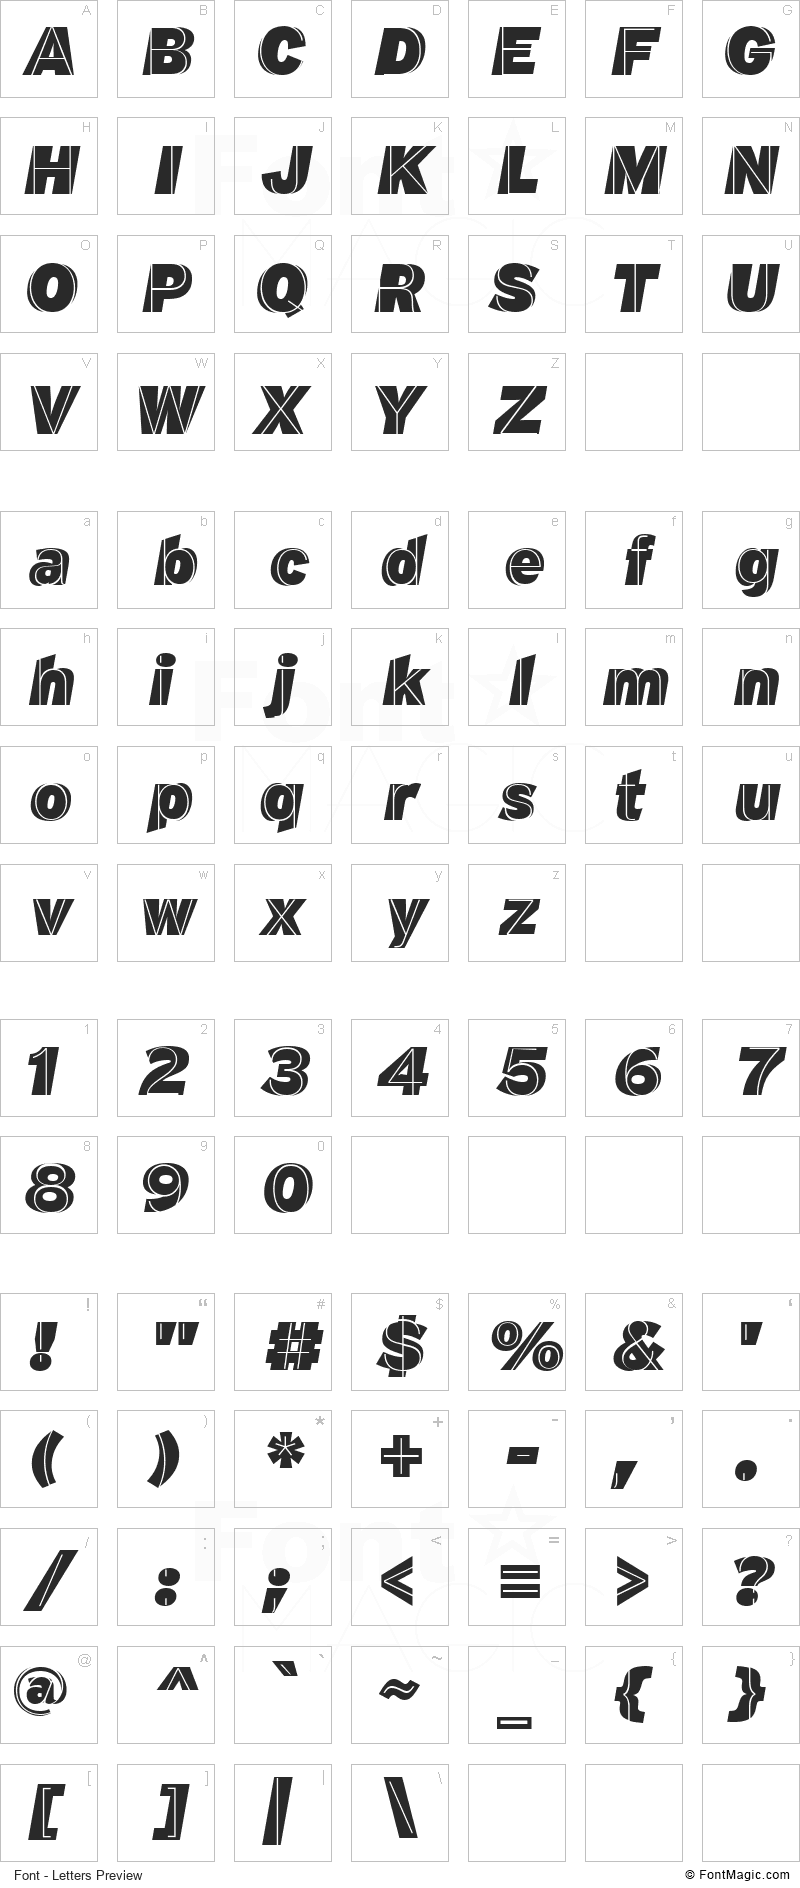 M.F. Plexus Font - All Latters Preview Chart